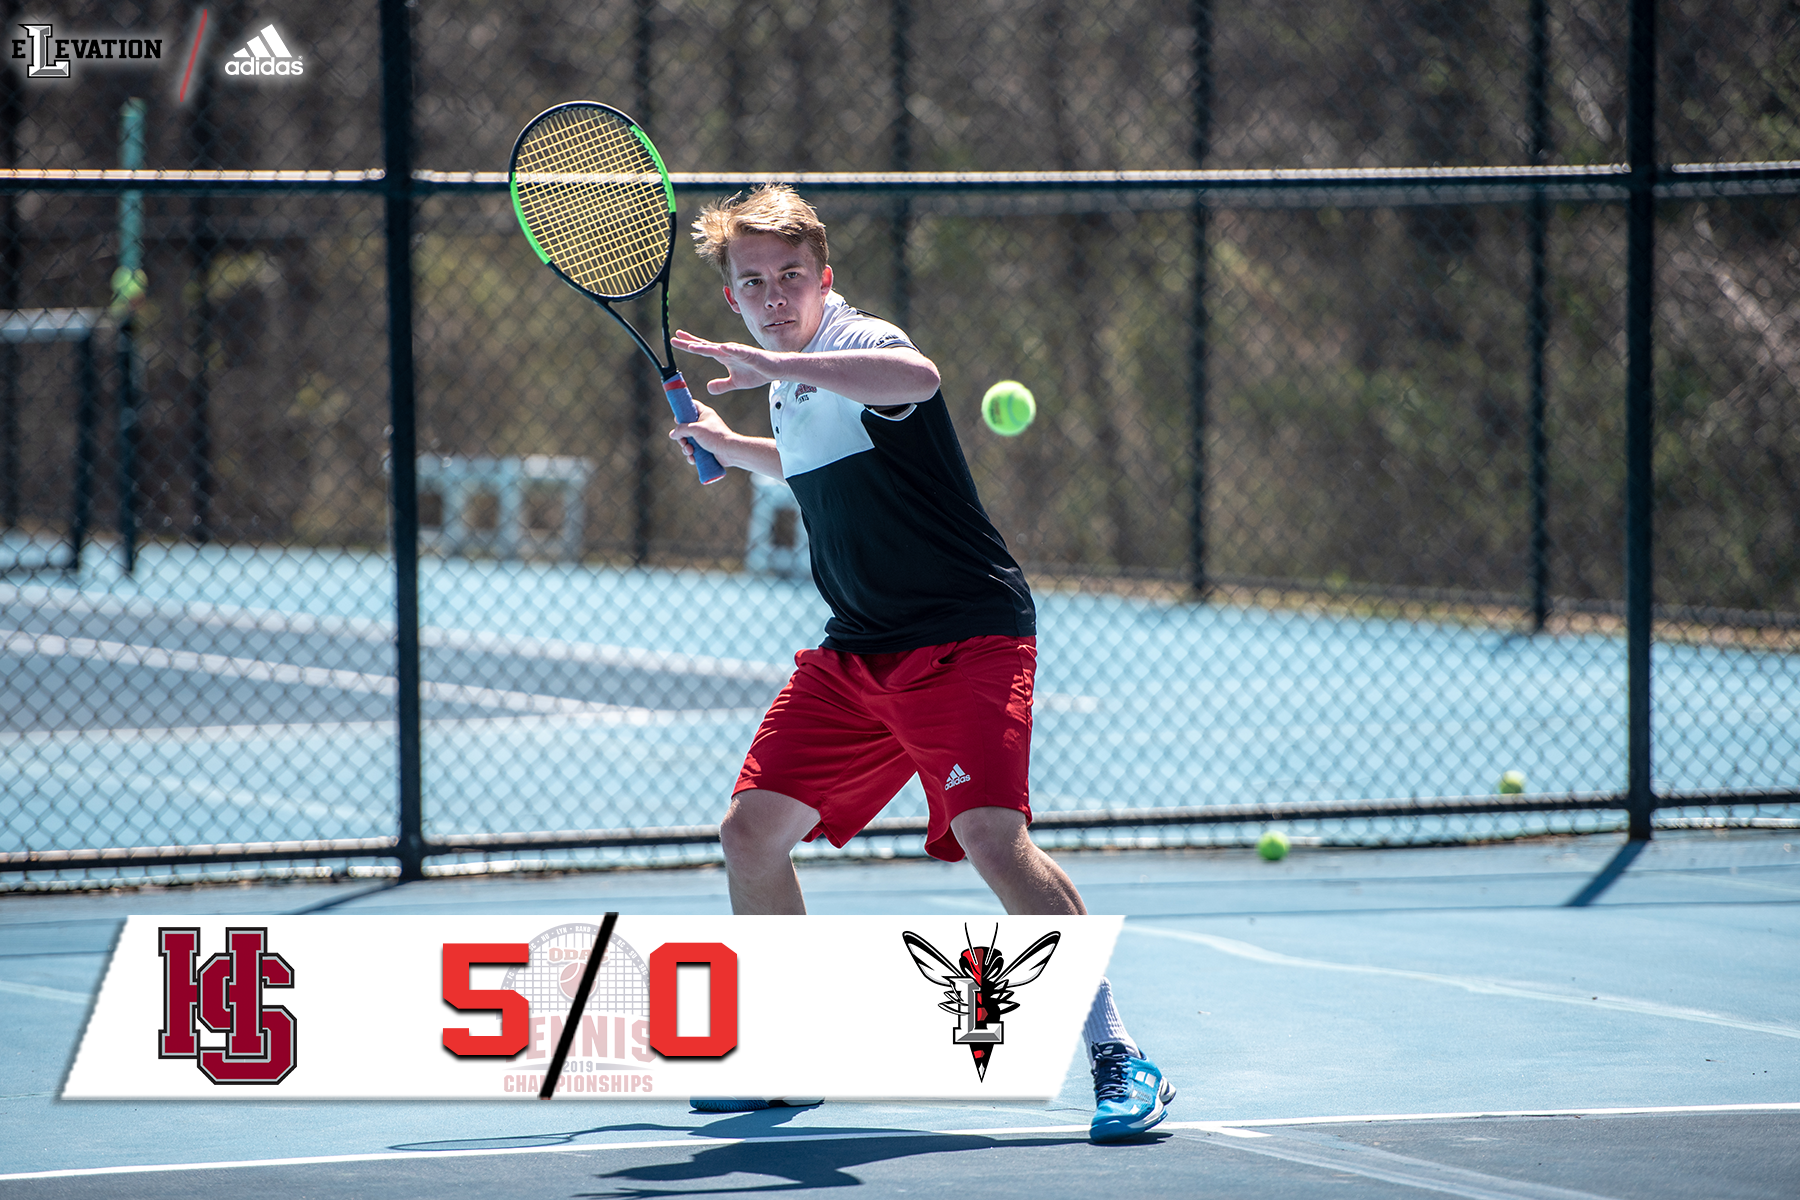 Brad Carson hitting a forehand. Score graphic showing 5-0 with ODAC tennis logo in bottom left.